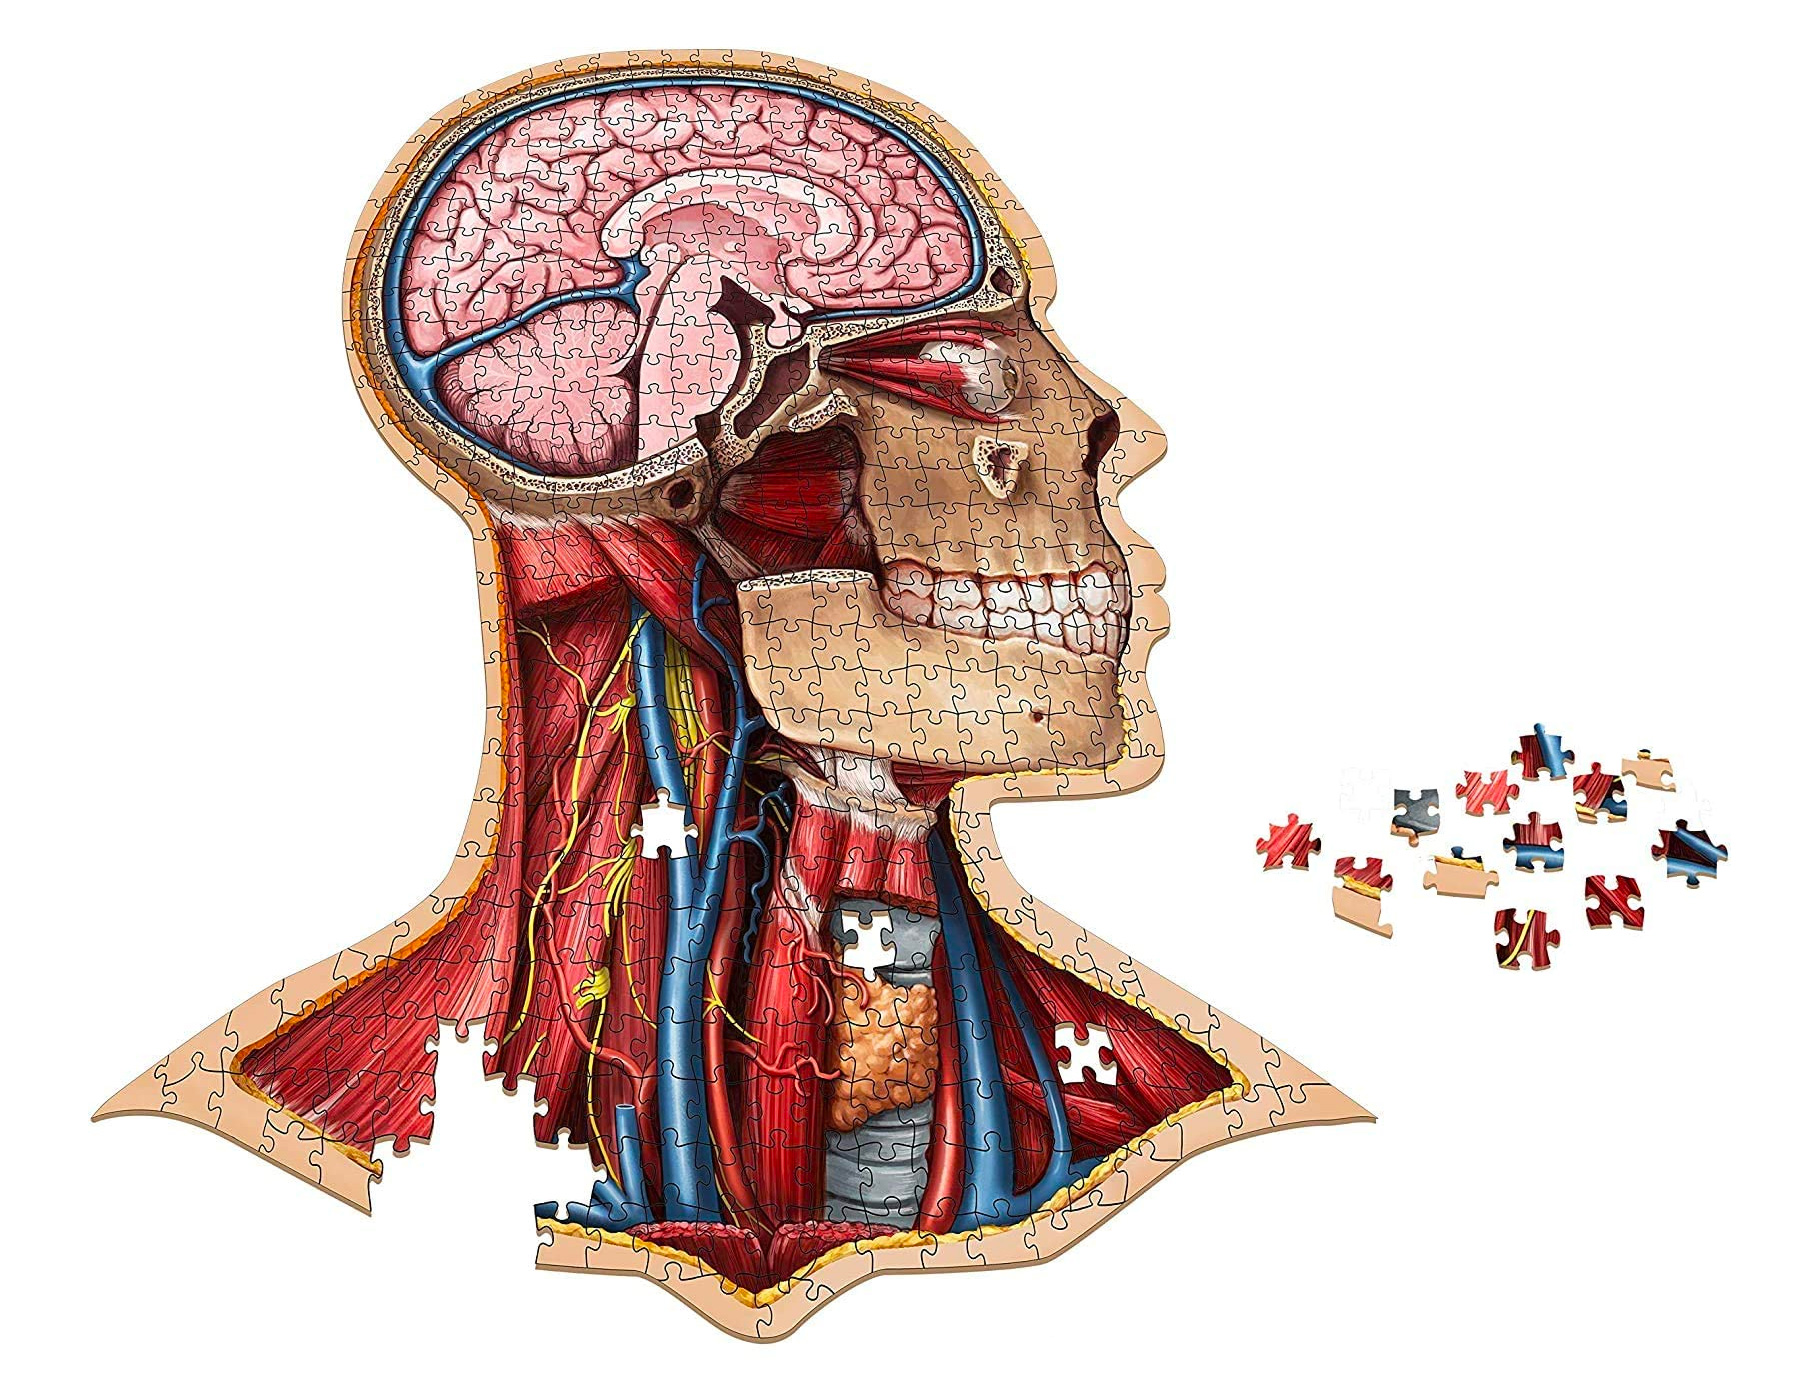 Explore Human Anatomy with a Scientific Jigsaw Puzzle at werd.com